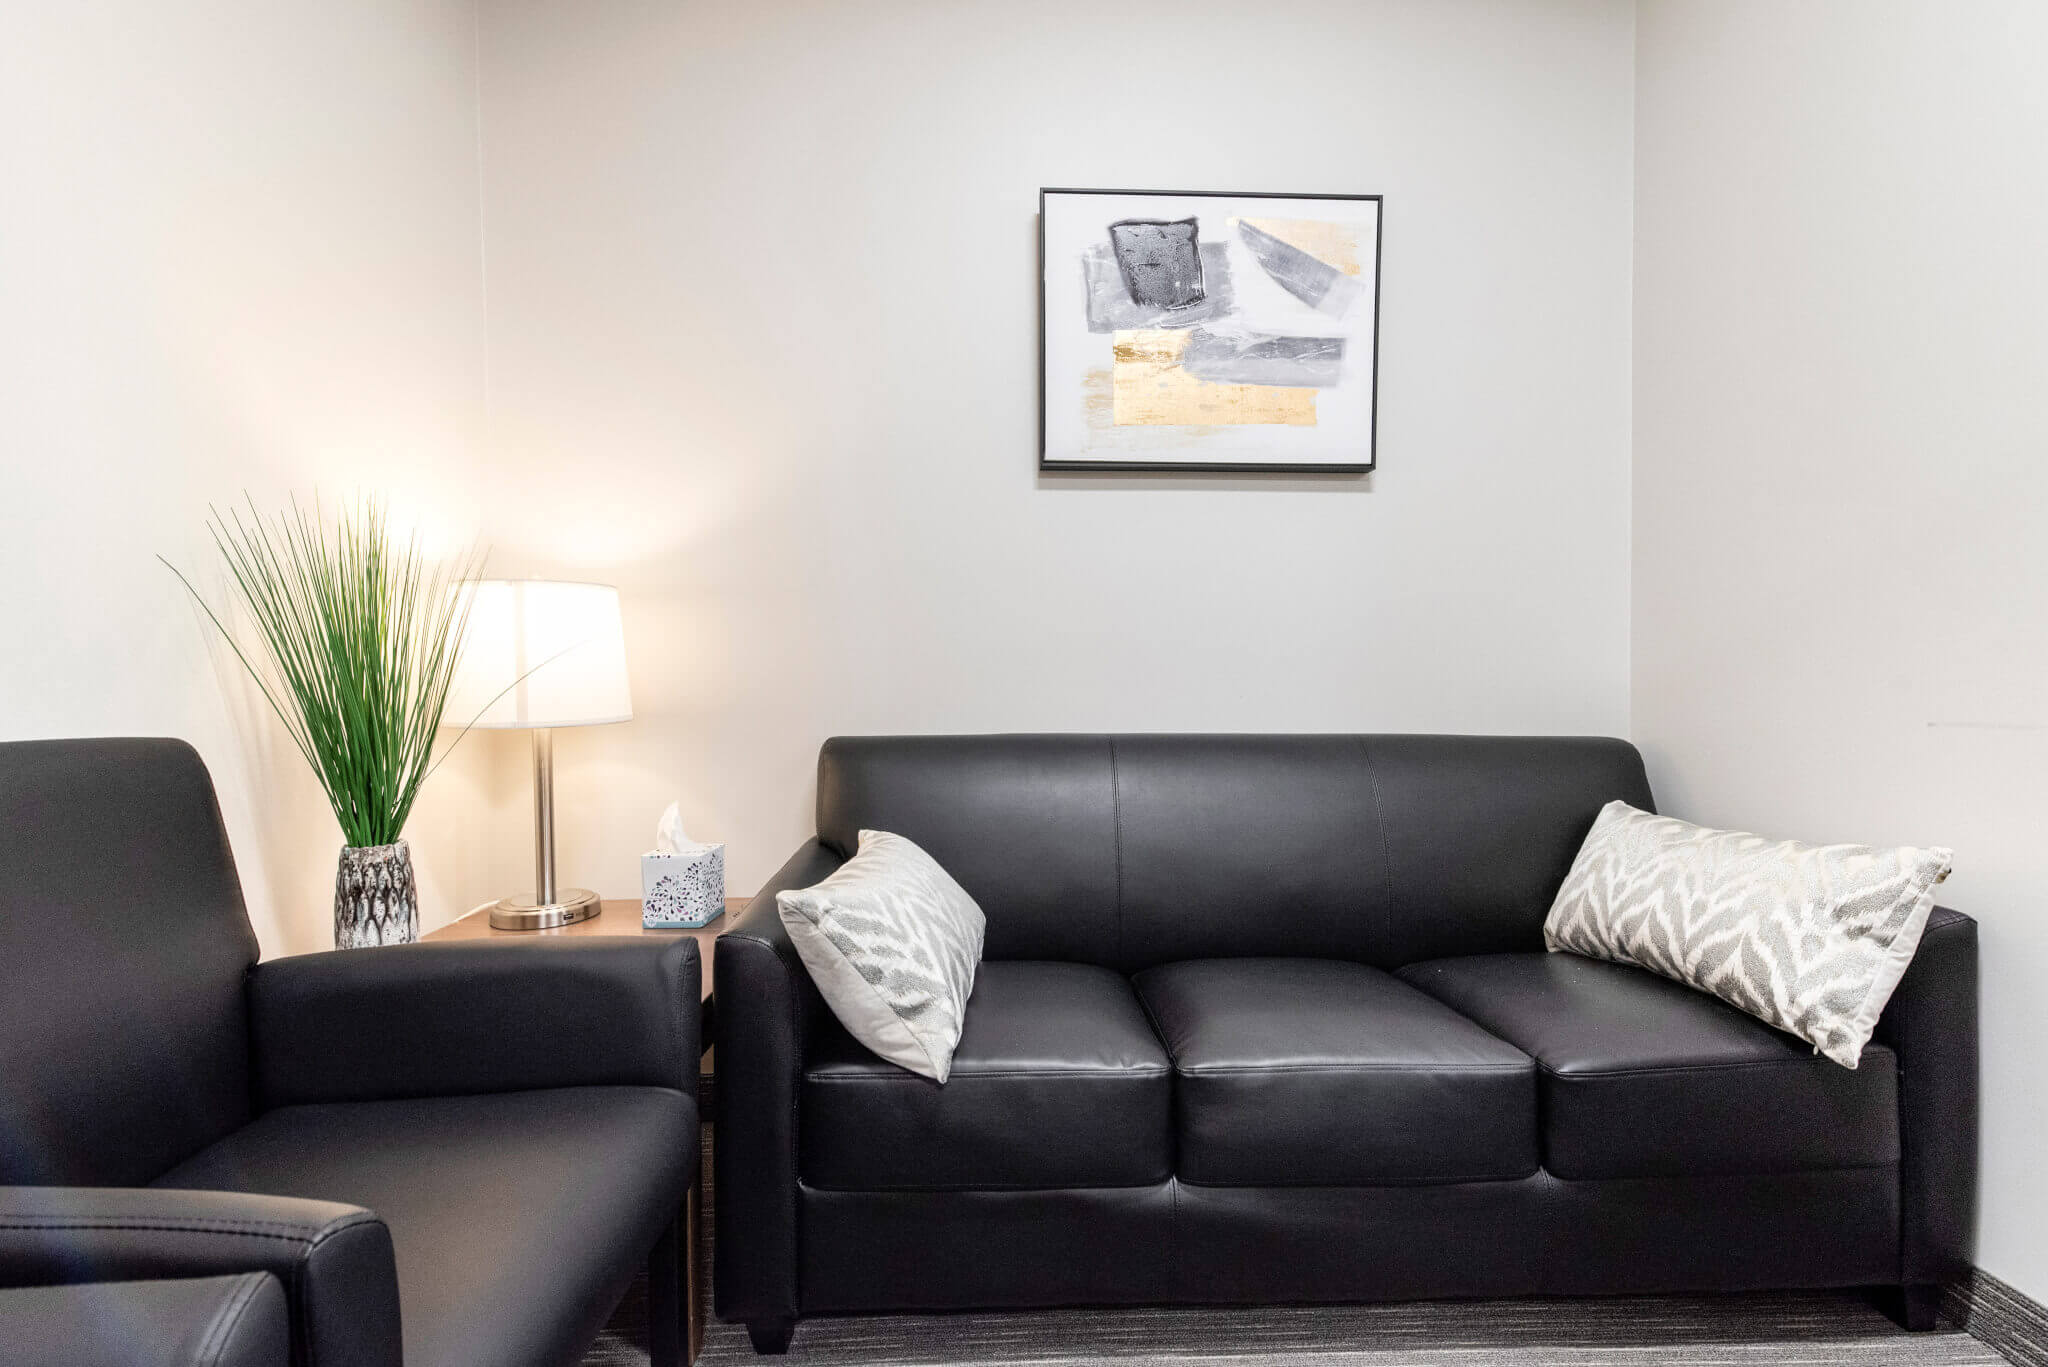 Glpg Great Lakes Psychology Group Counseling Therapy Schaumburg Illinois Waiting Area